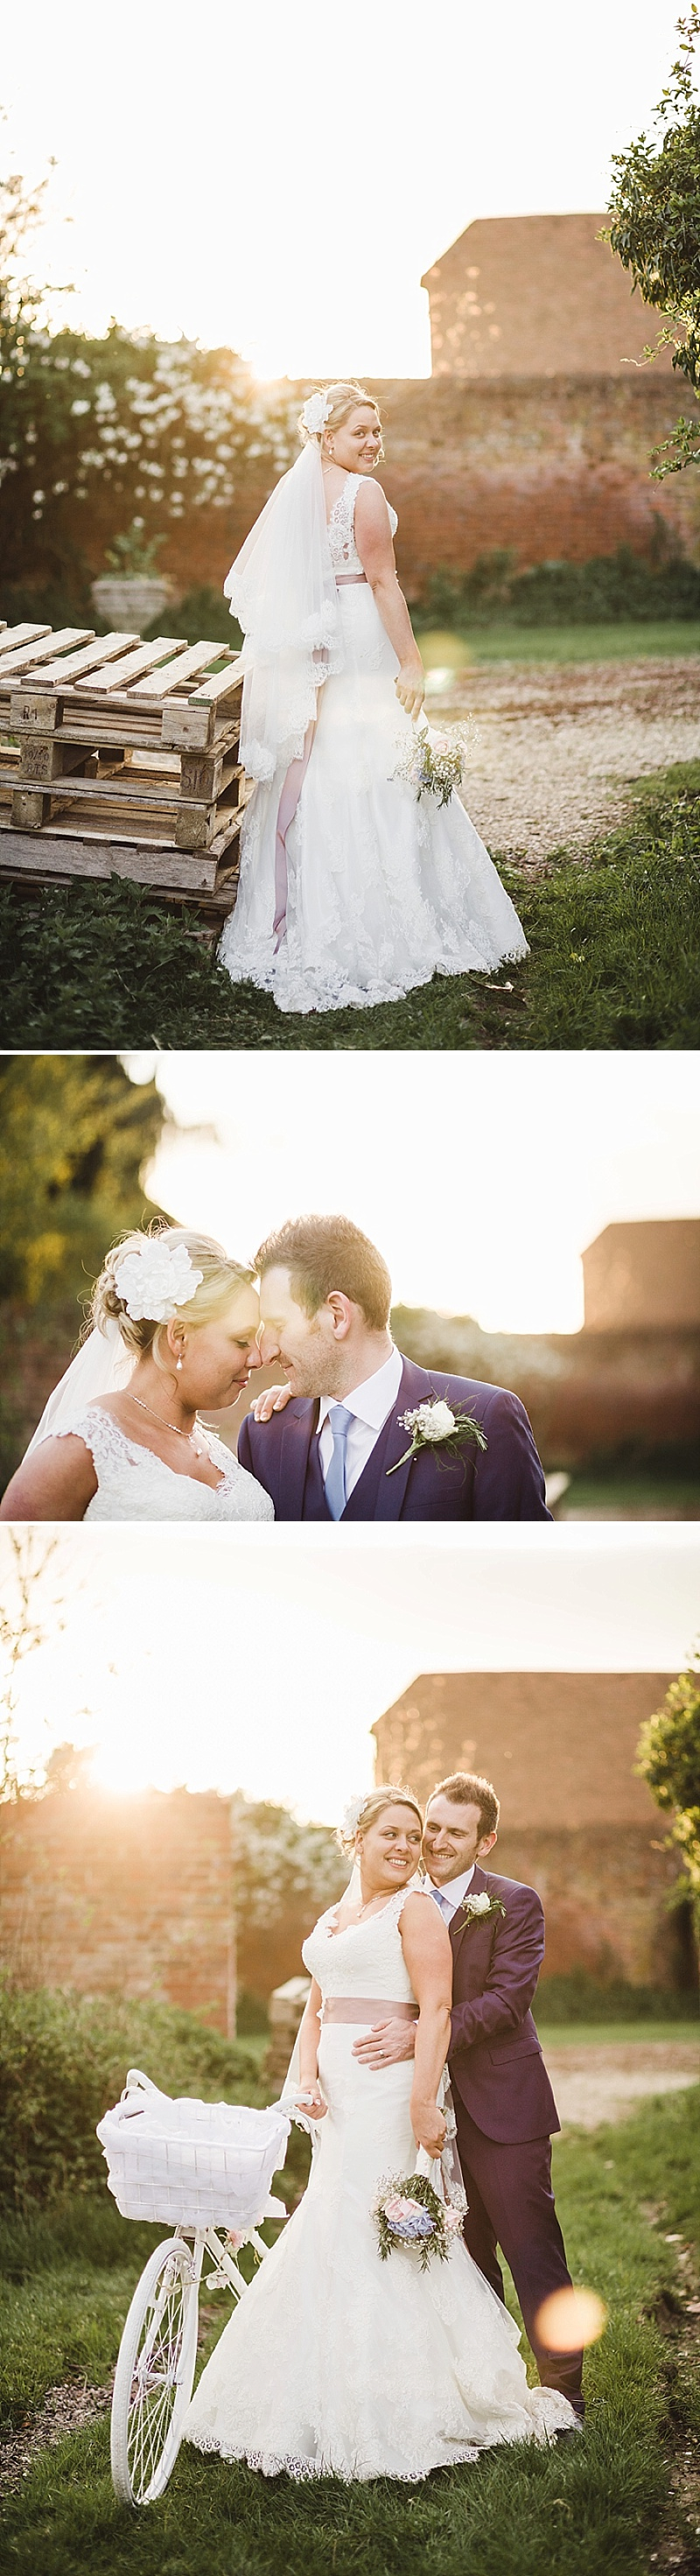 Rustic Wedding With A Baby Pink And Blue Colour Scheme At Lillibrooke Manor In Maidenhead With Bride In Essence Of Australia D1367 And Blue Abode Shoes From Dune And Bridesmaids In Dessy With Groom In Suit From Next 5